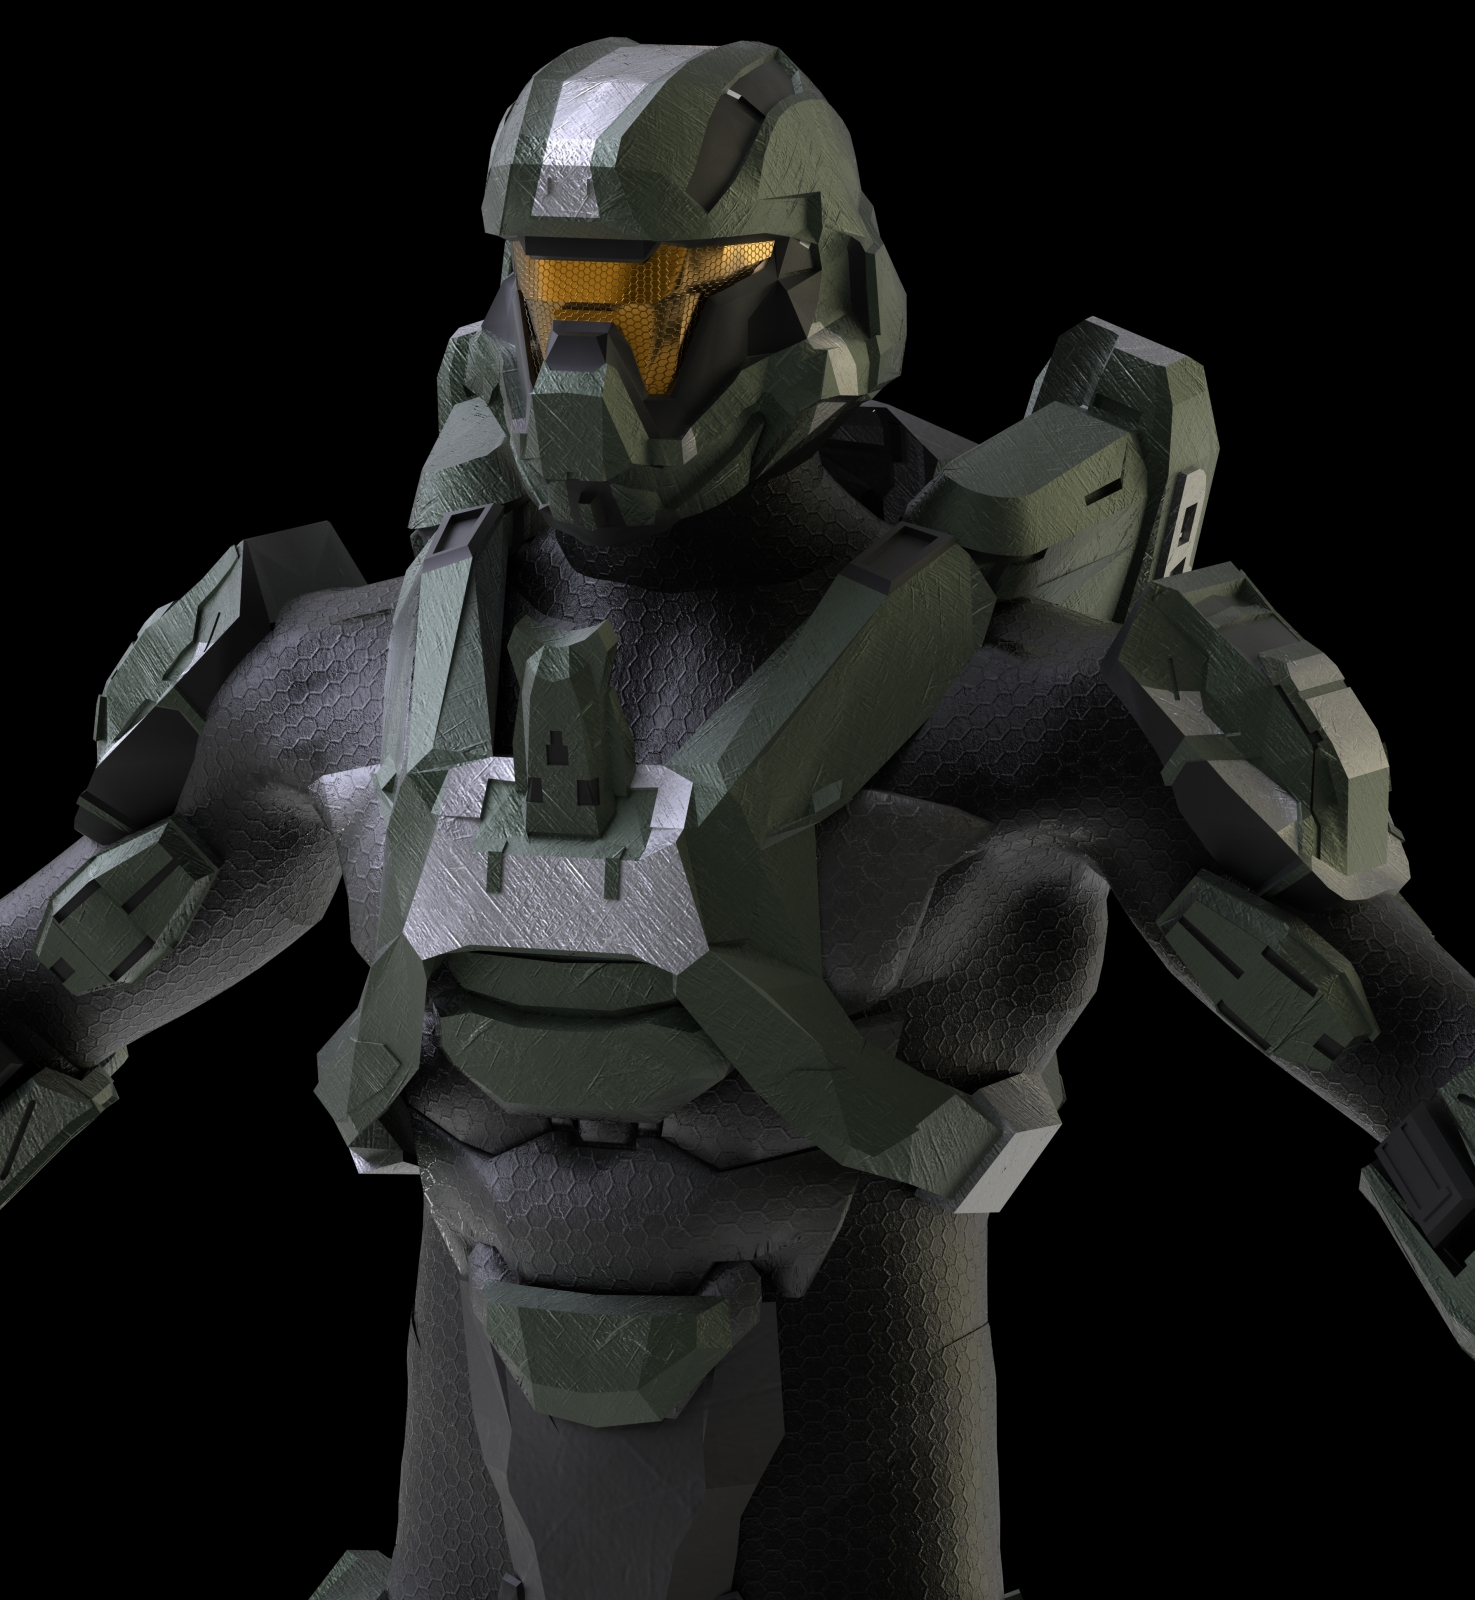 Halo 4 Recruit Armor Pepakura - 0425